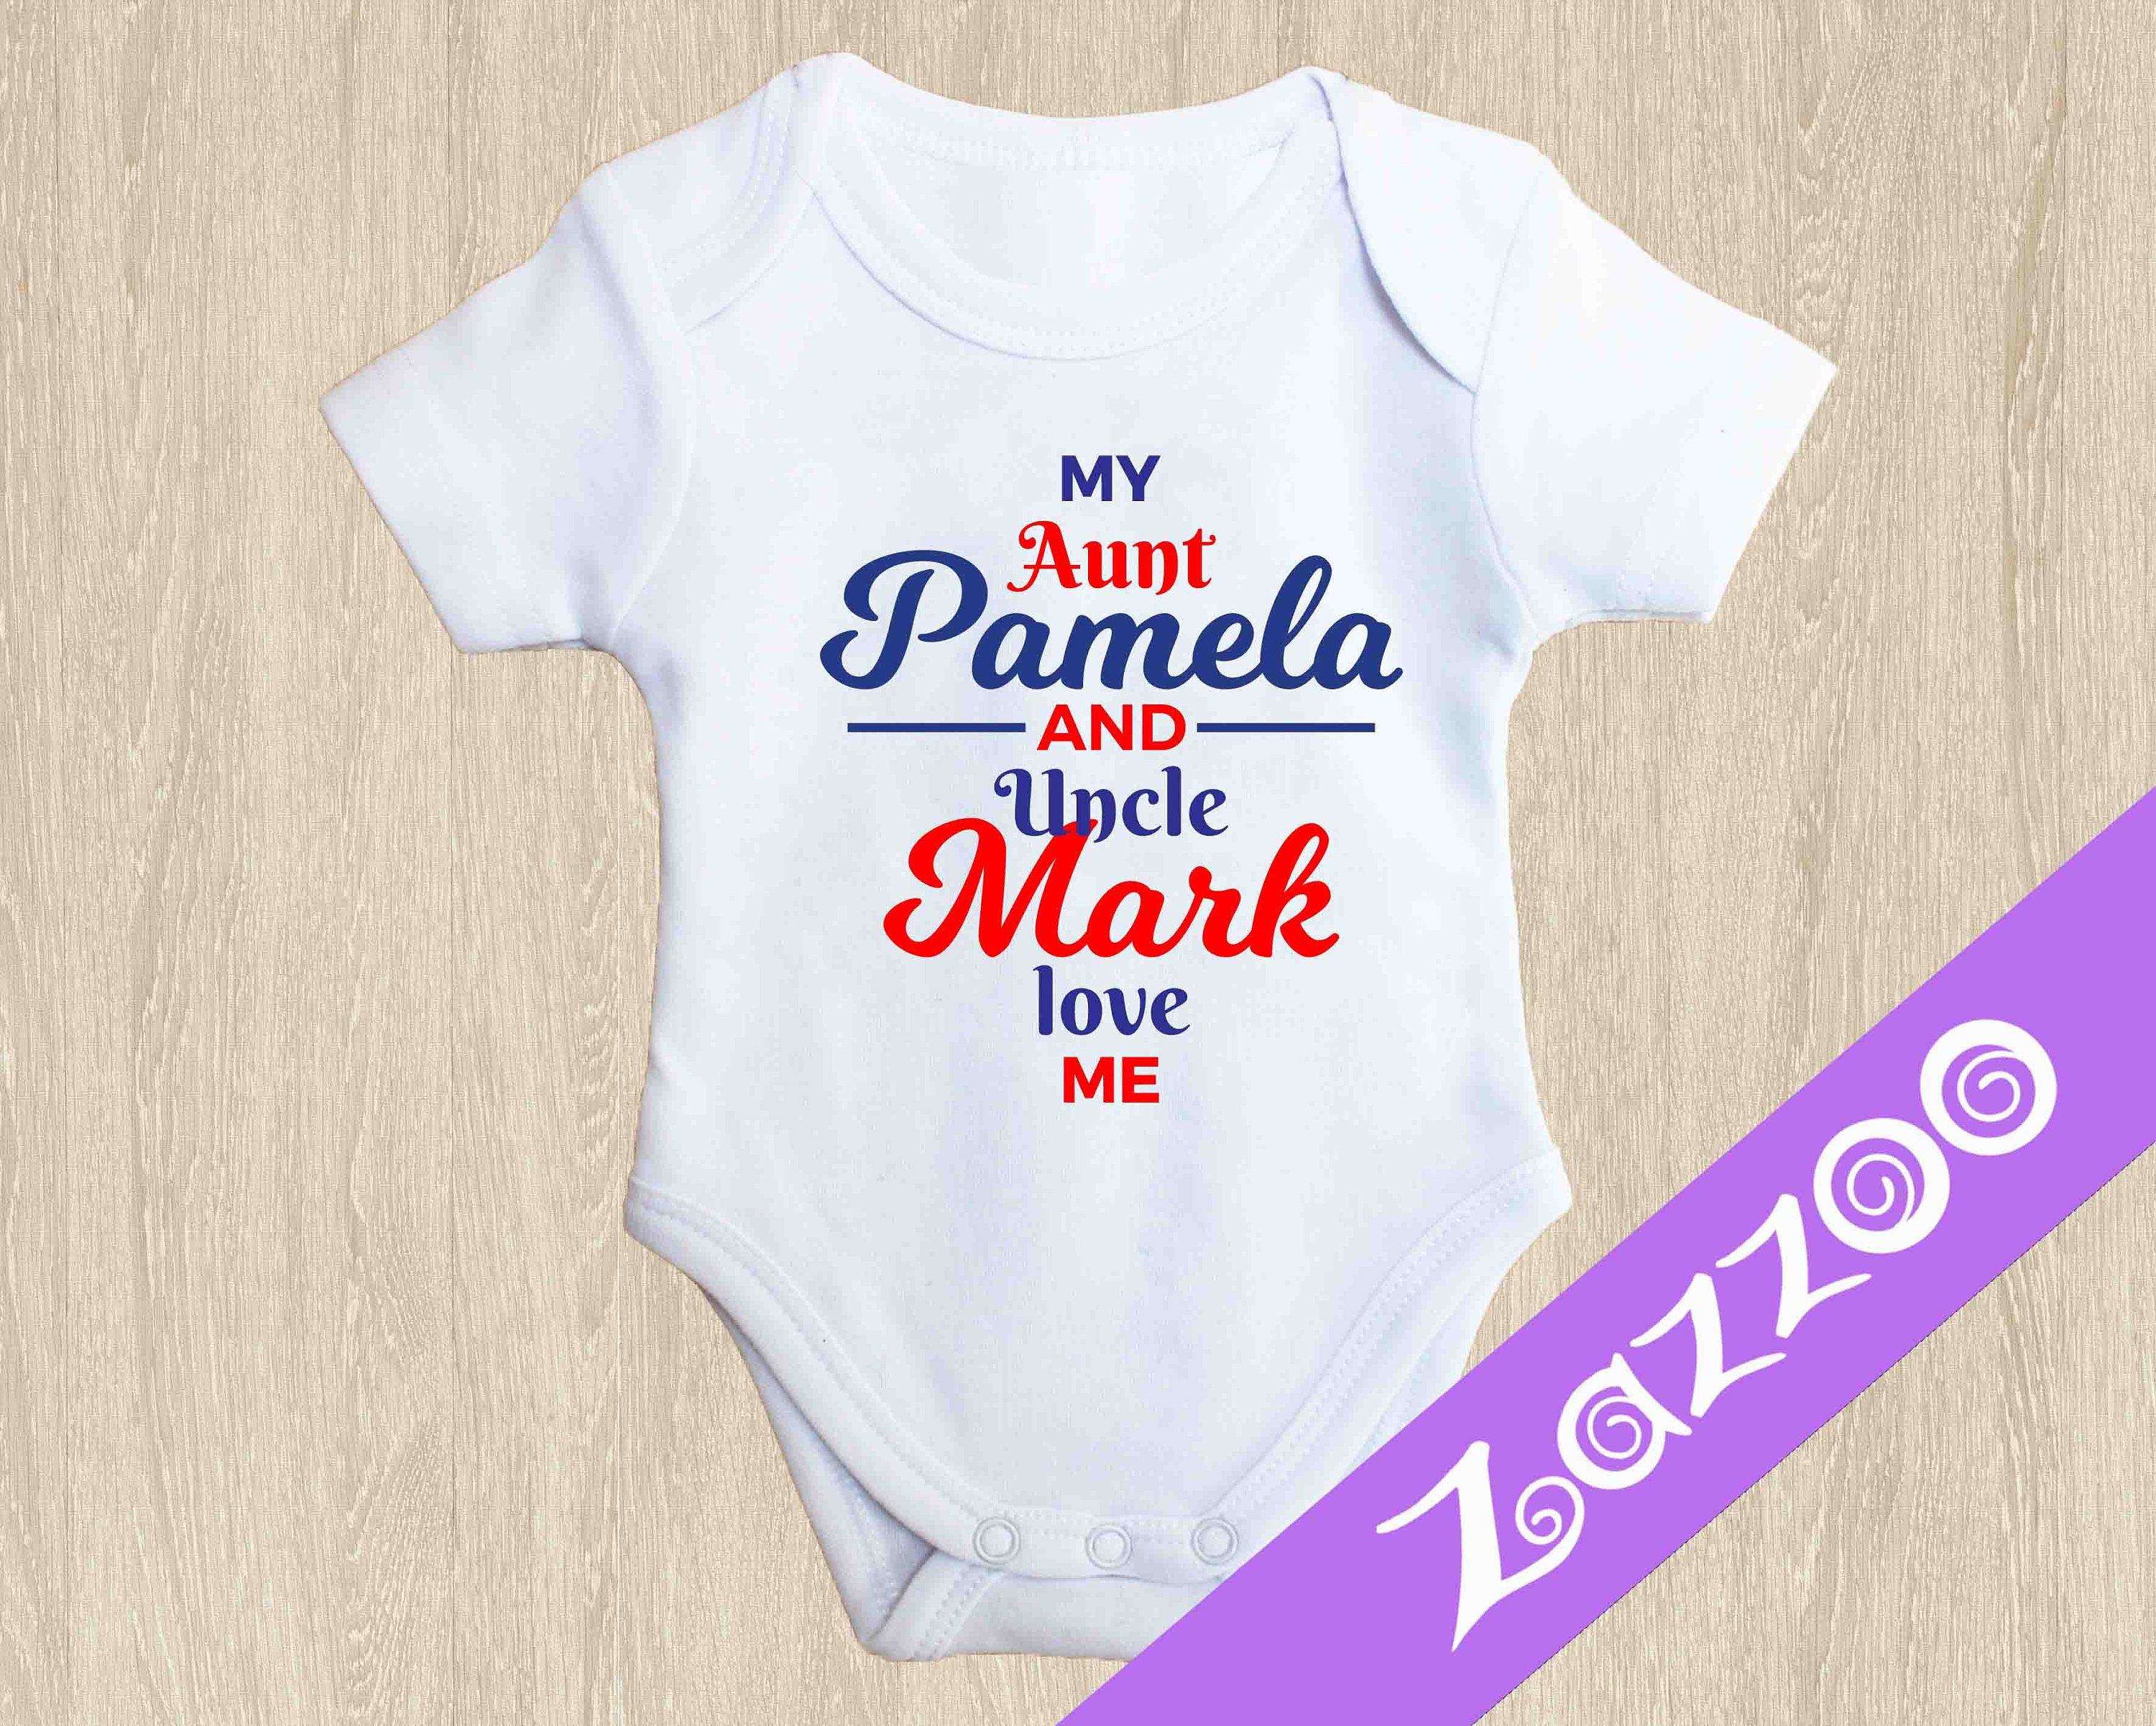 Personalized onesie personalized bodysuit personalized romper personalized onesie personalized bodysuit personalized romper baby shower gift customized onesie love my aunt uncle grandma nanna pop negle Gallery